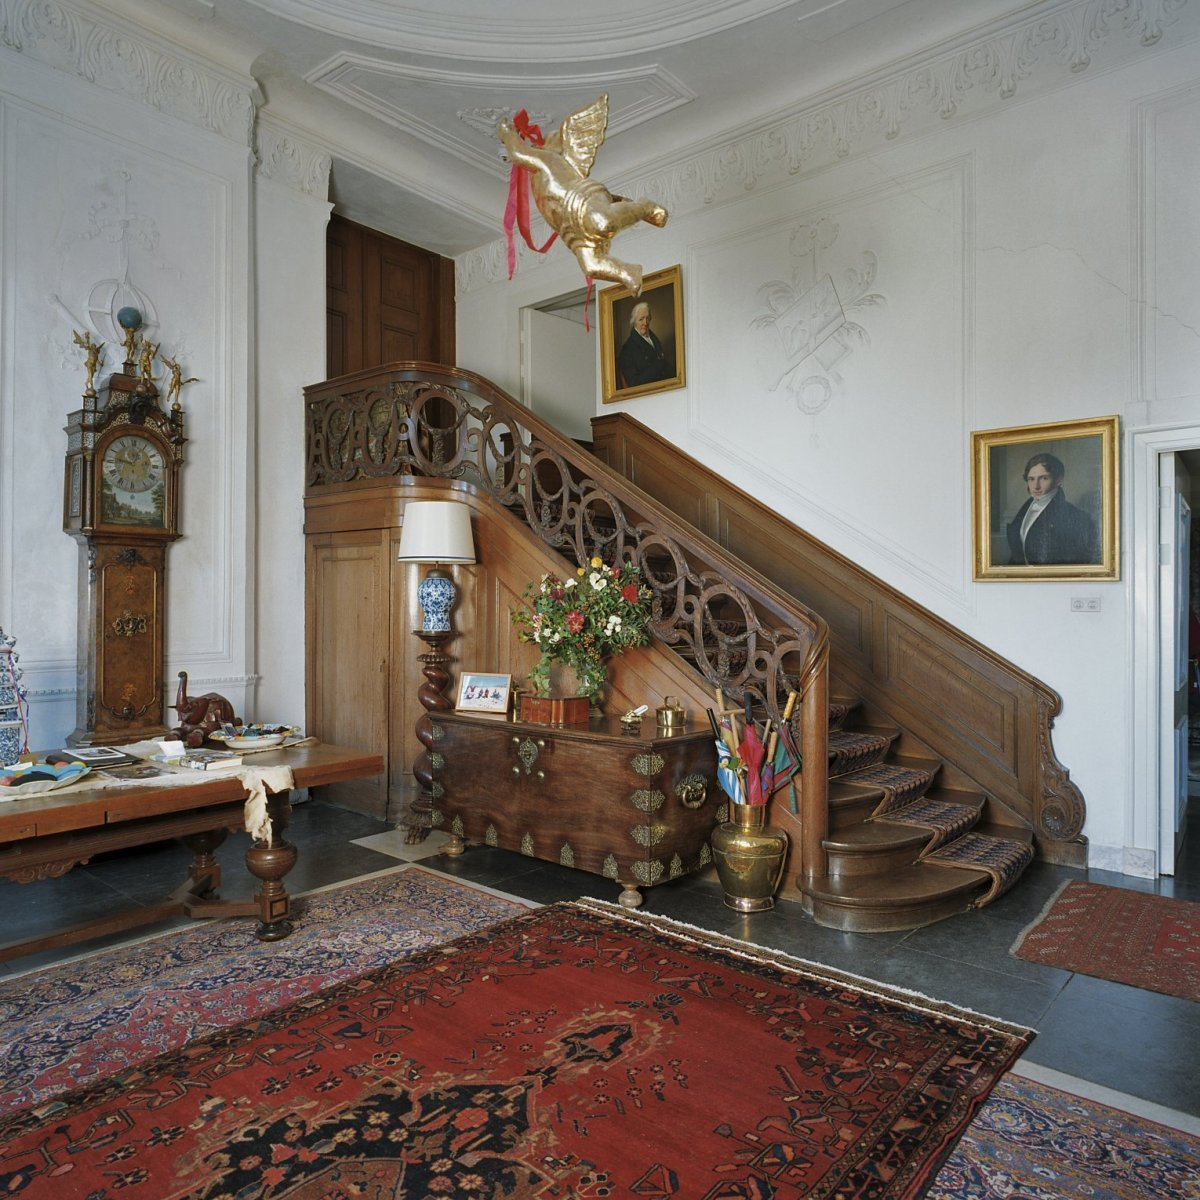 File interieur hal met zicht op trap laag keppel 20382606 wikimedia commons for Foto trap interieur